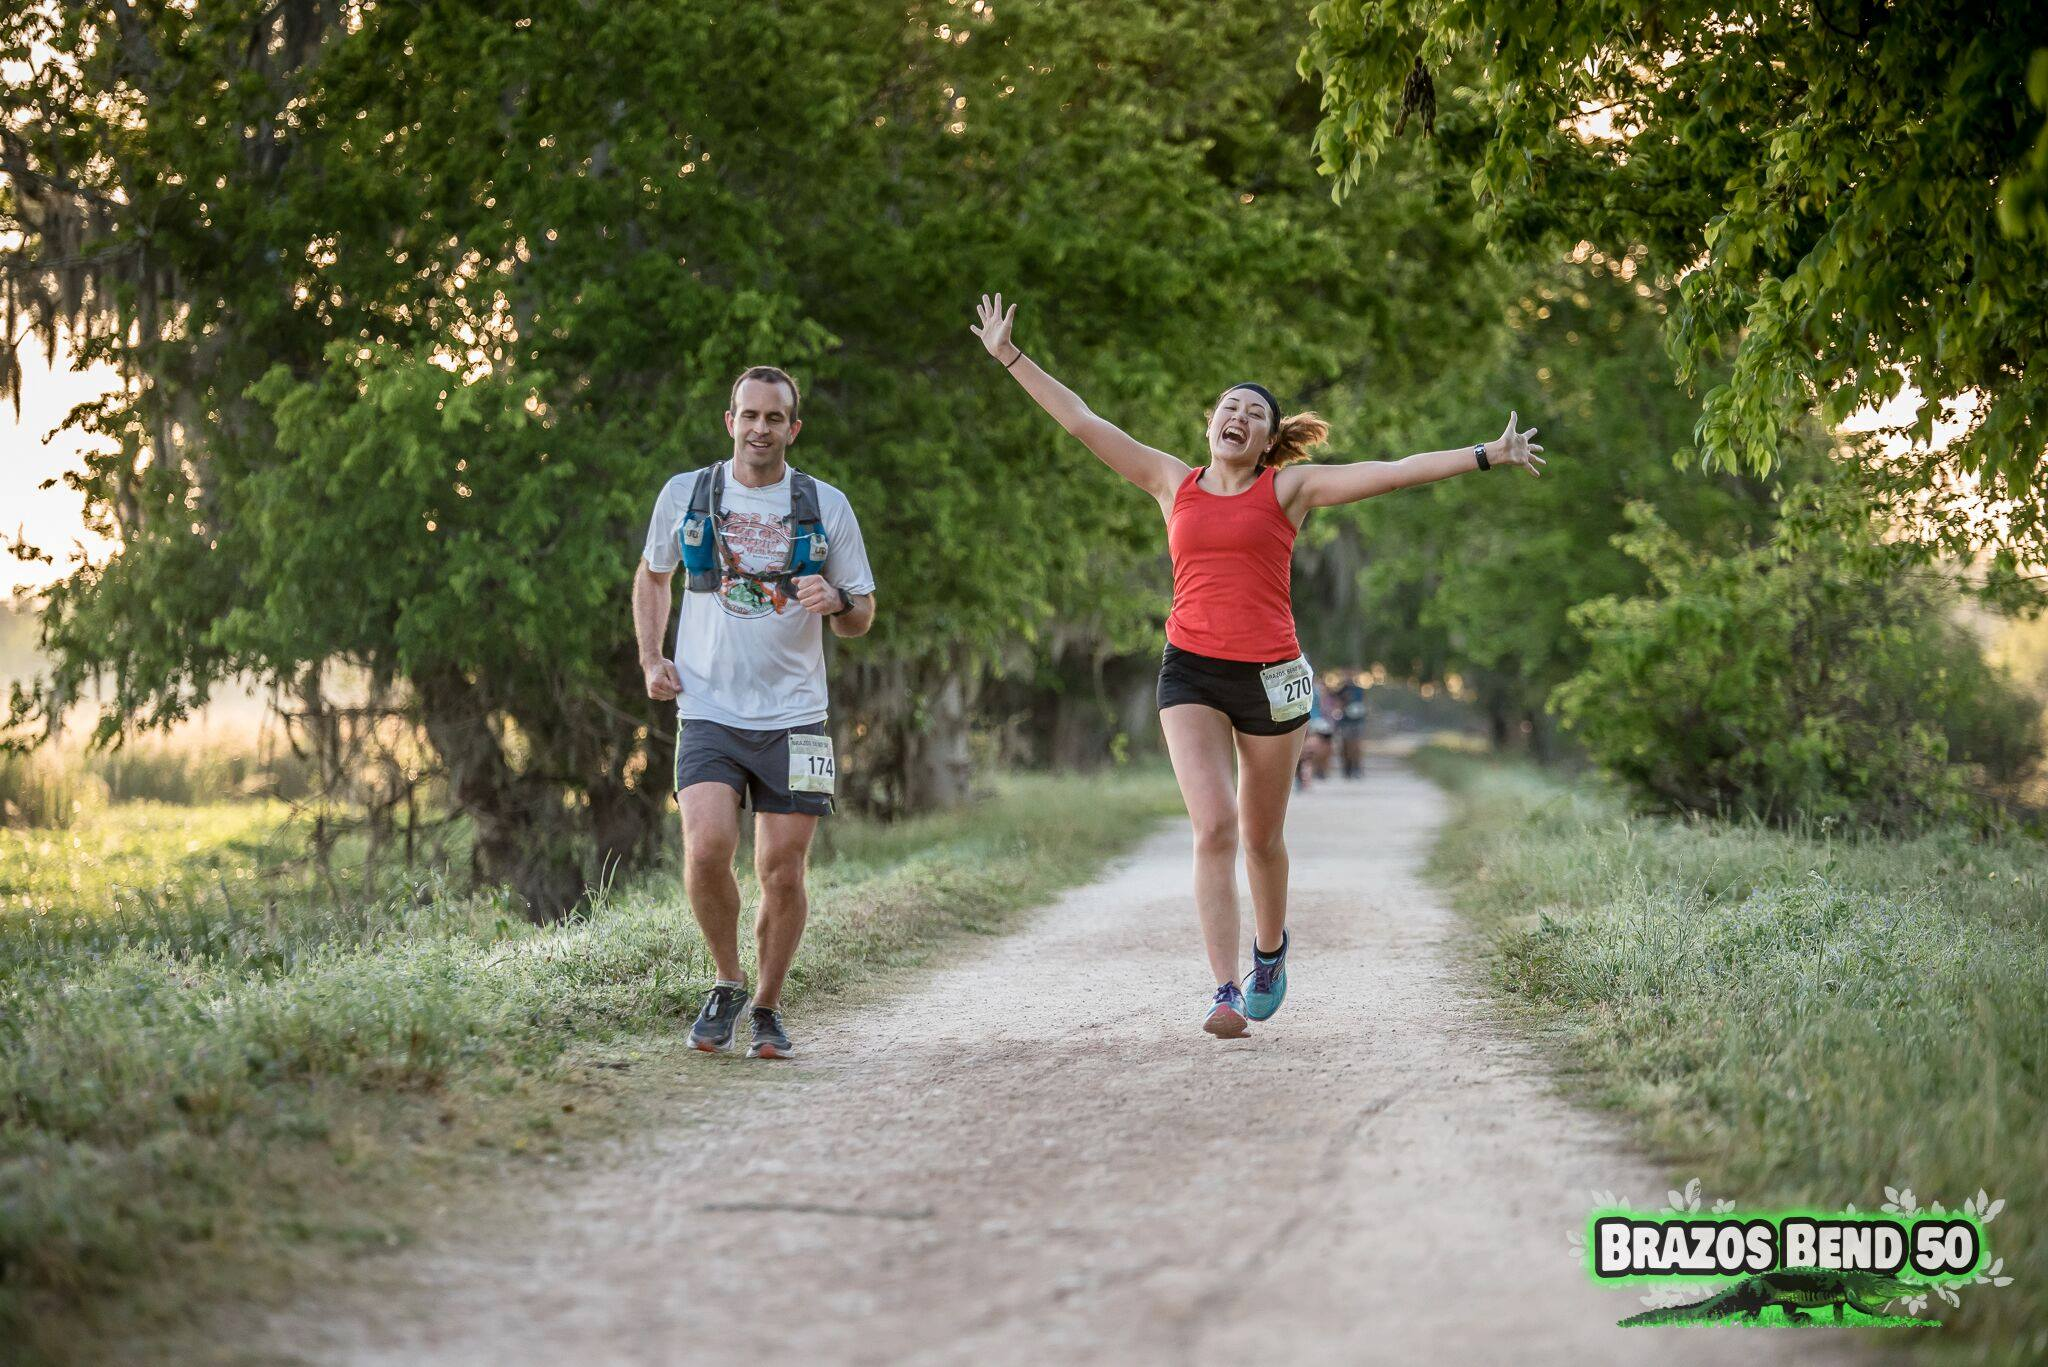 Her positivity is abundant and quite apparent from the moment you meet her. And she's taken her Racing Coach Wendy's advice on how to handle camera men on the running course!